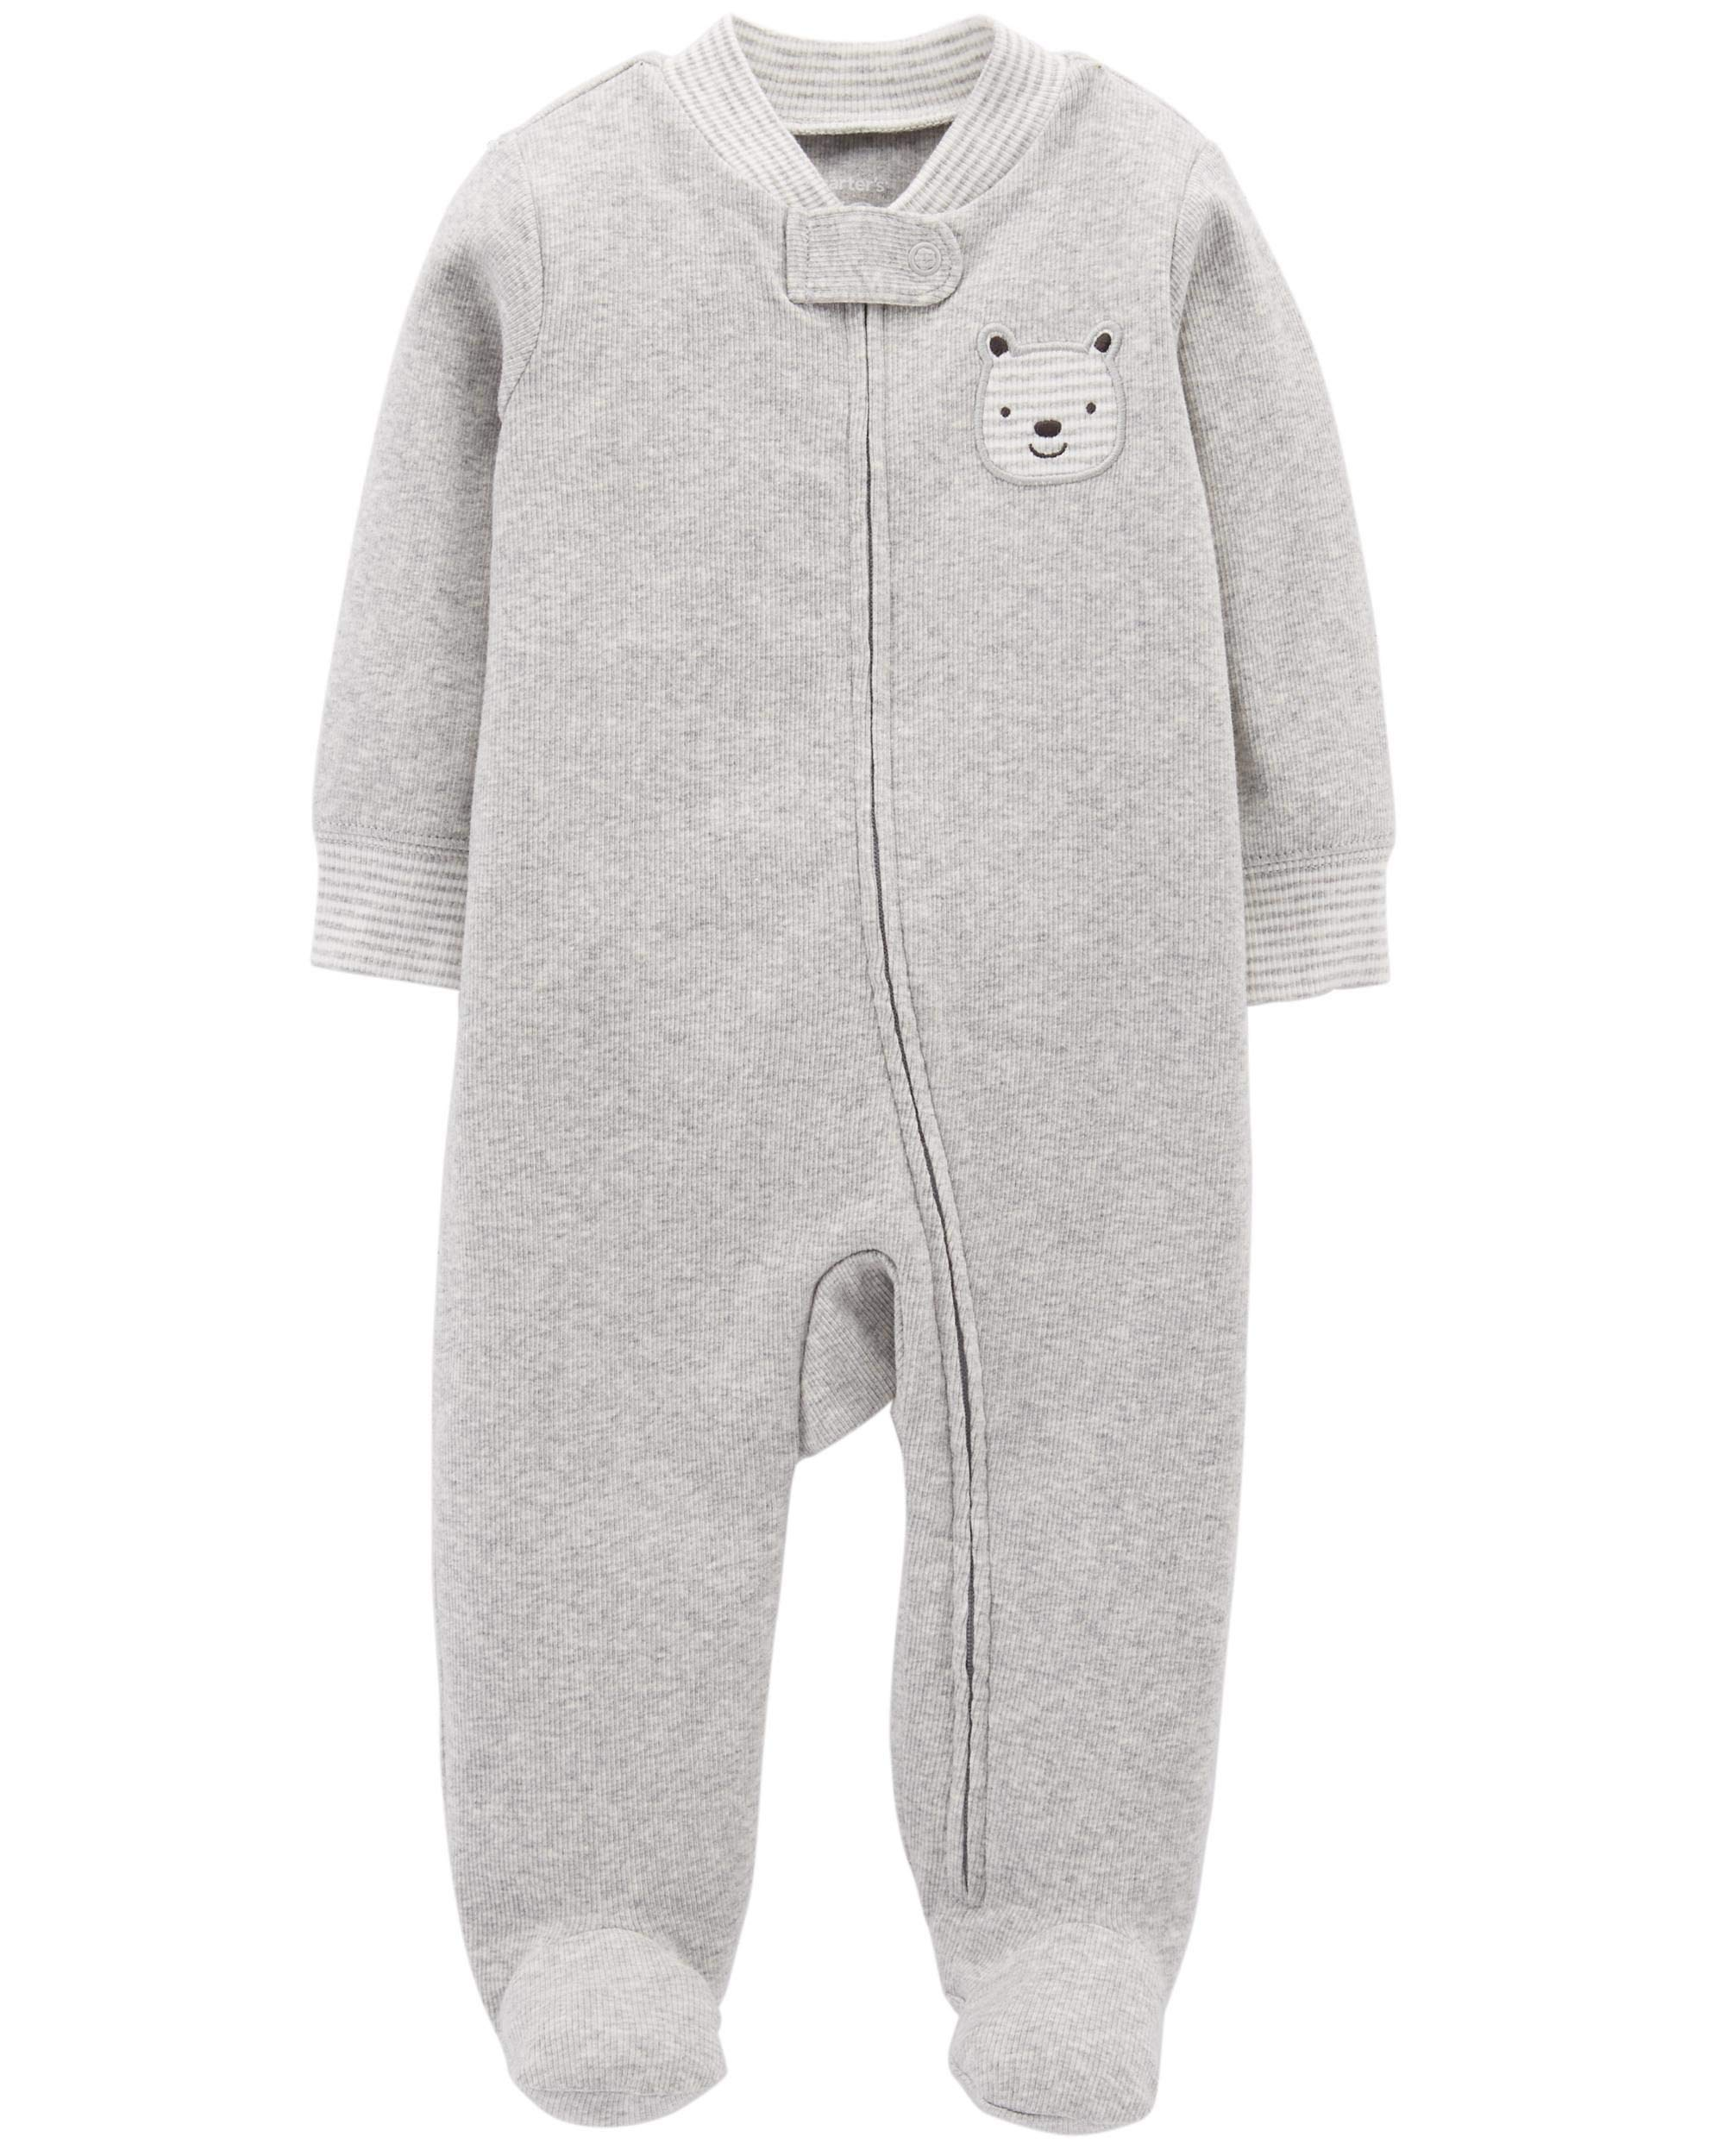 Carter's Baby Boys Cotton Footed Sleep N Play (Newborn, Gray Heather)